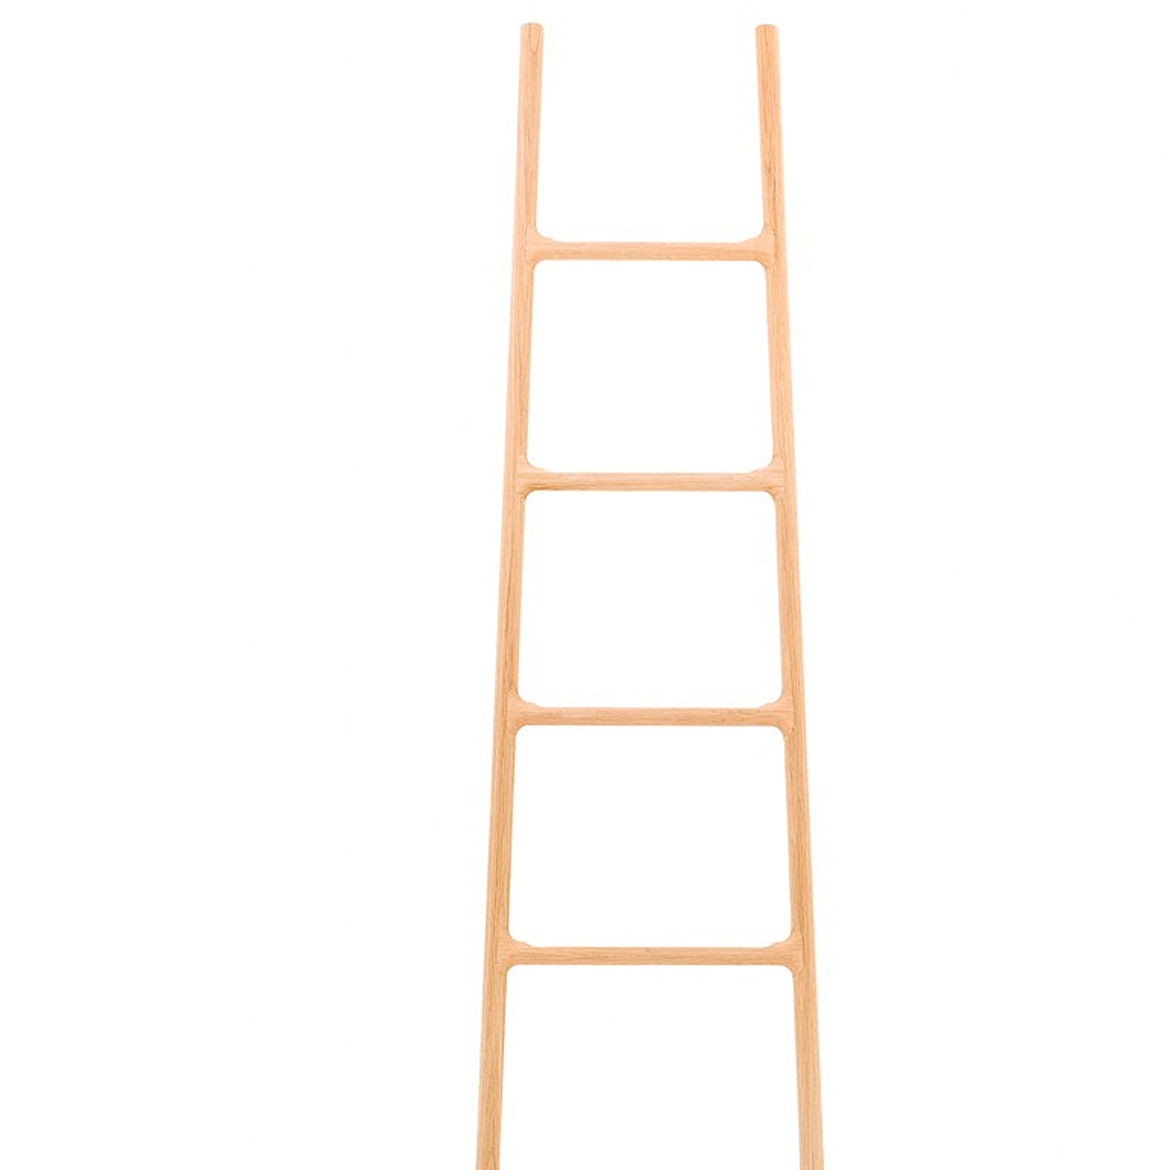 Wooden ladder with accessories.